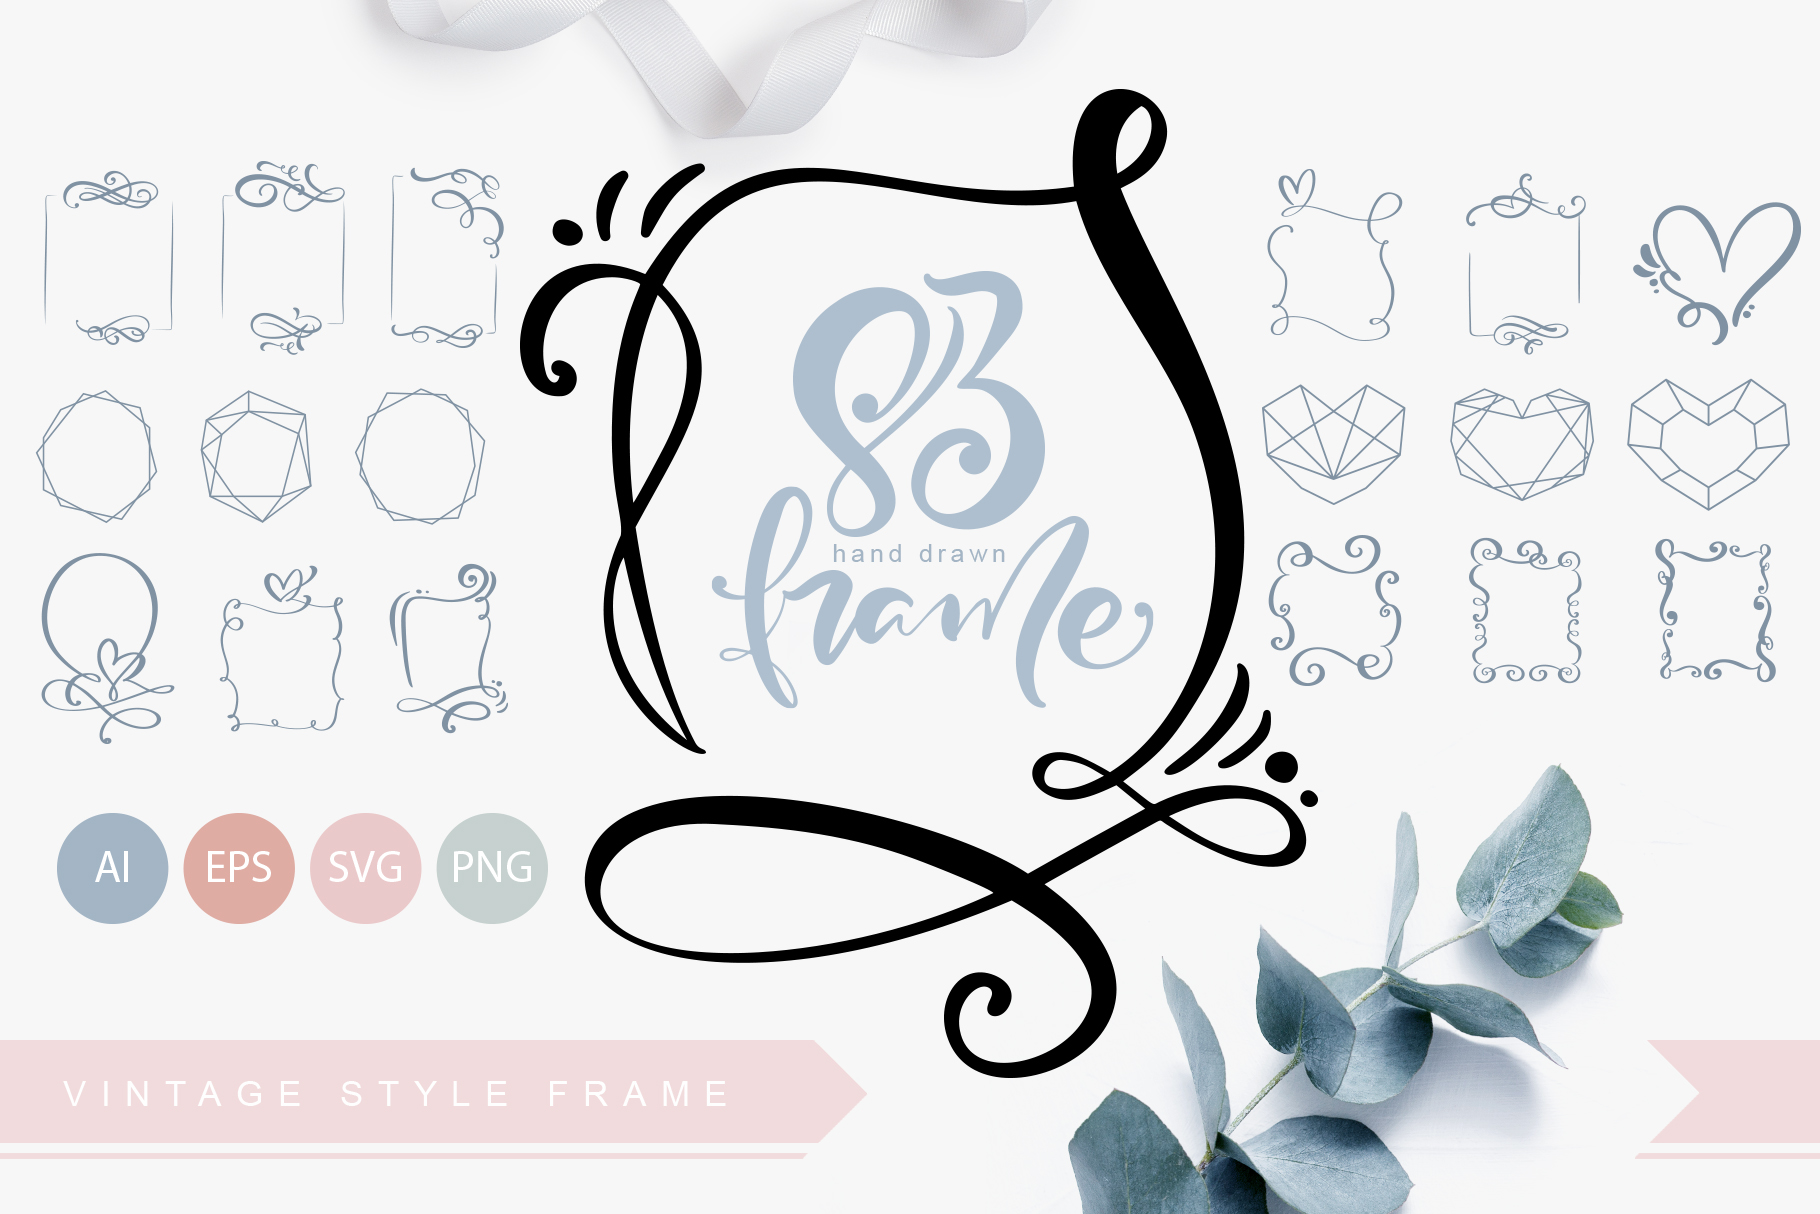 83 Hand Drawn Vintage SVG Frames - title01 1